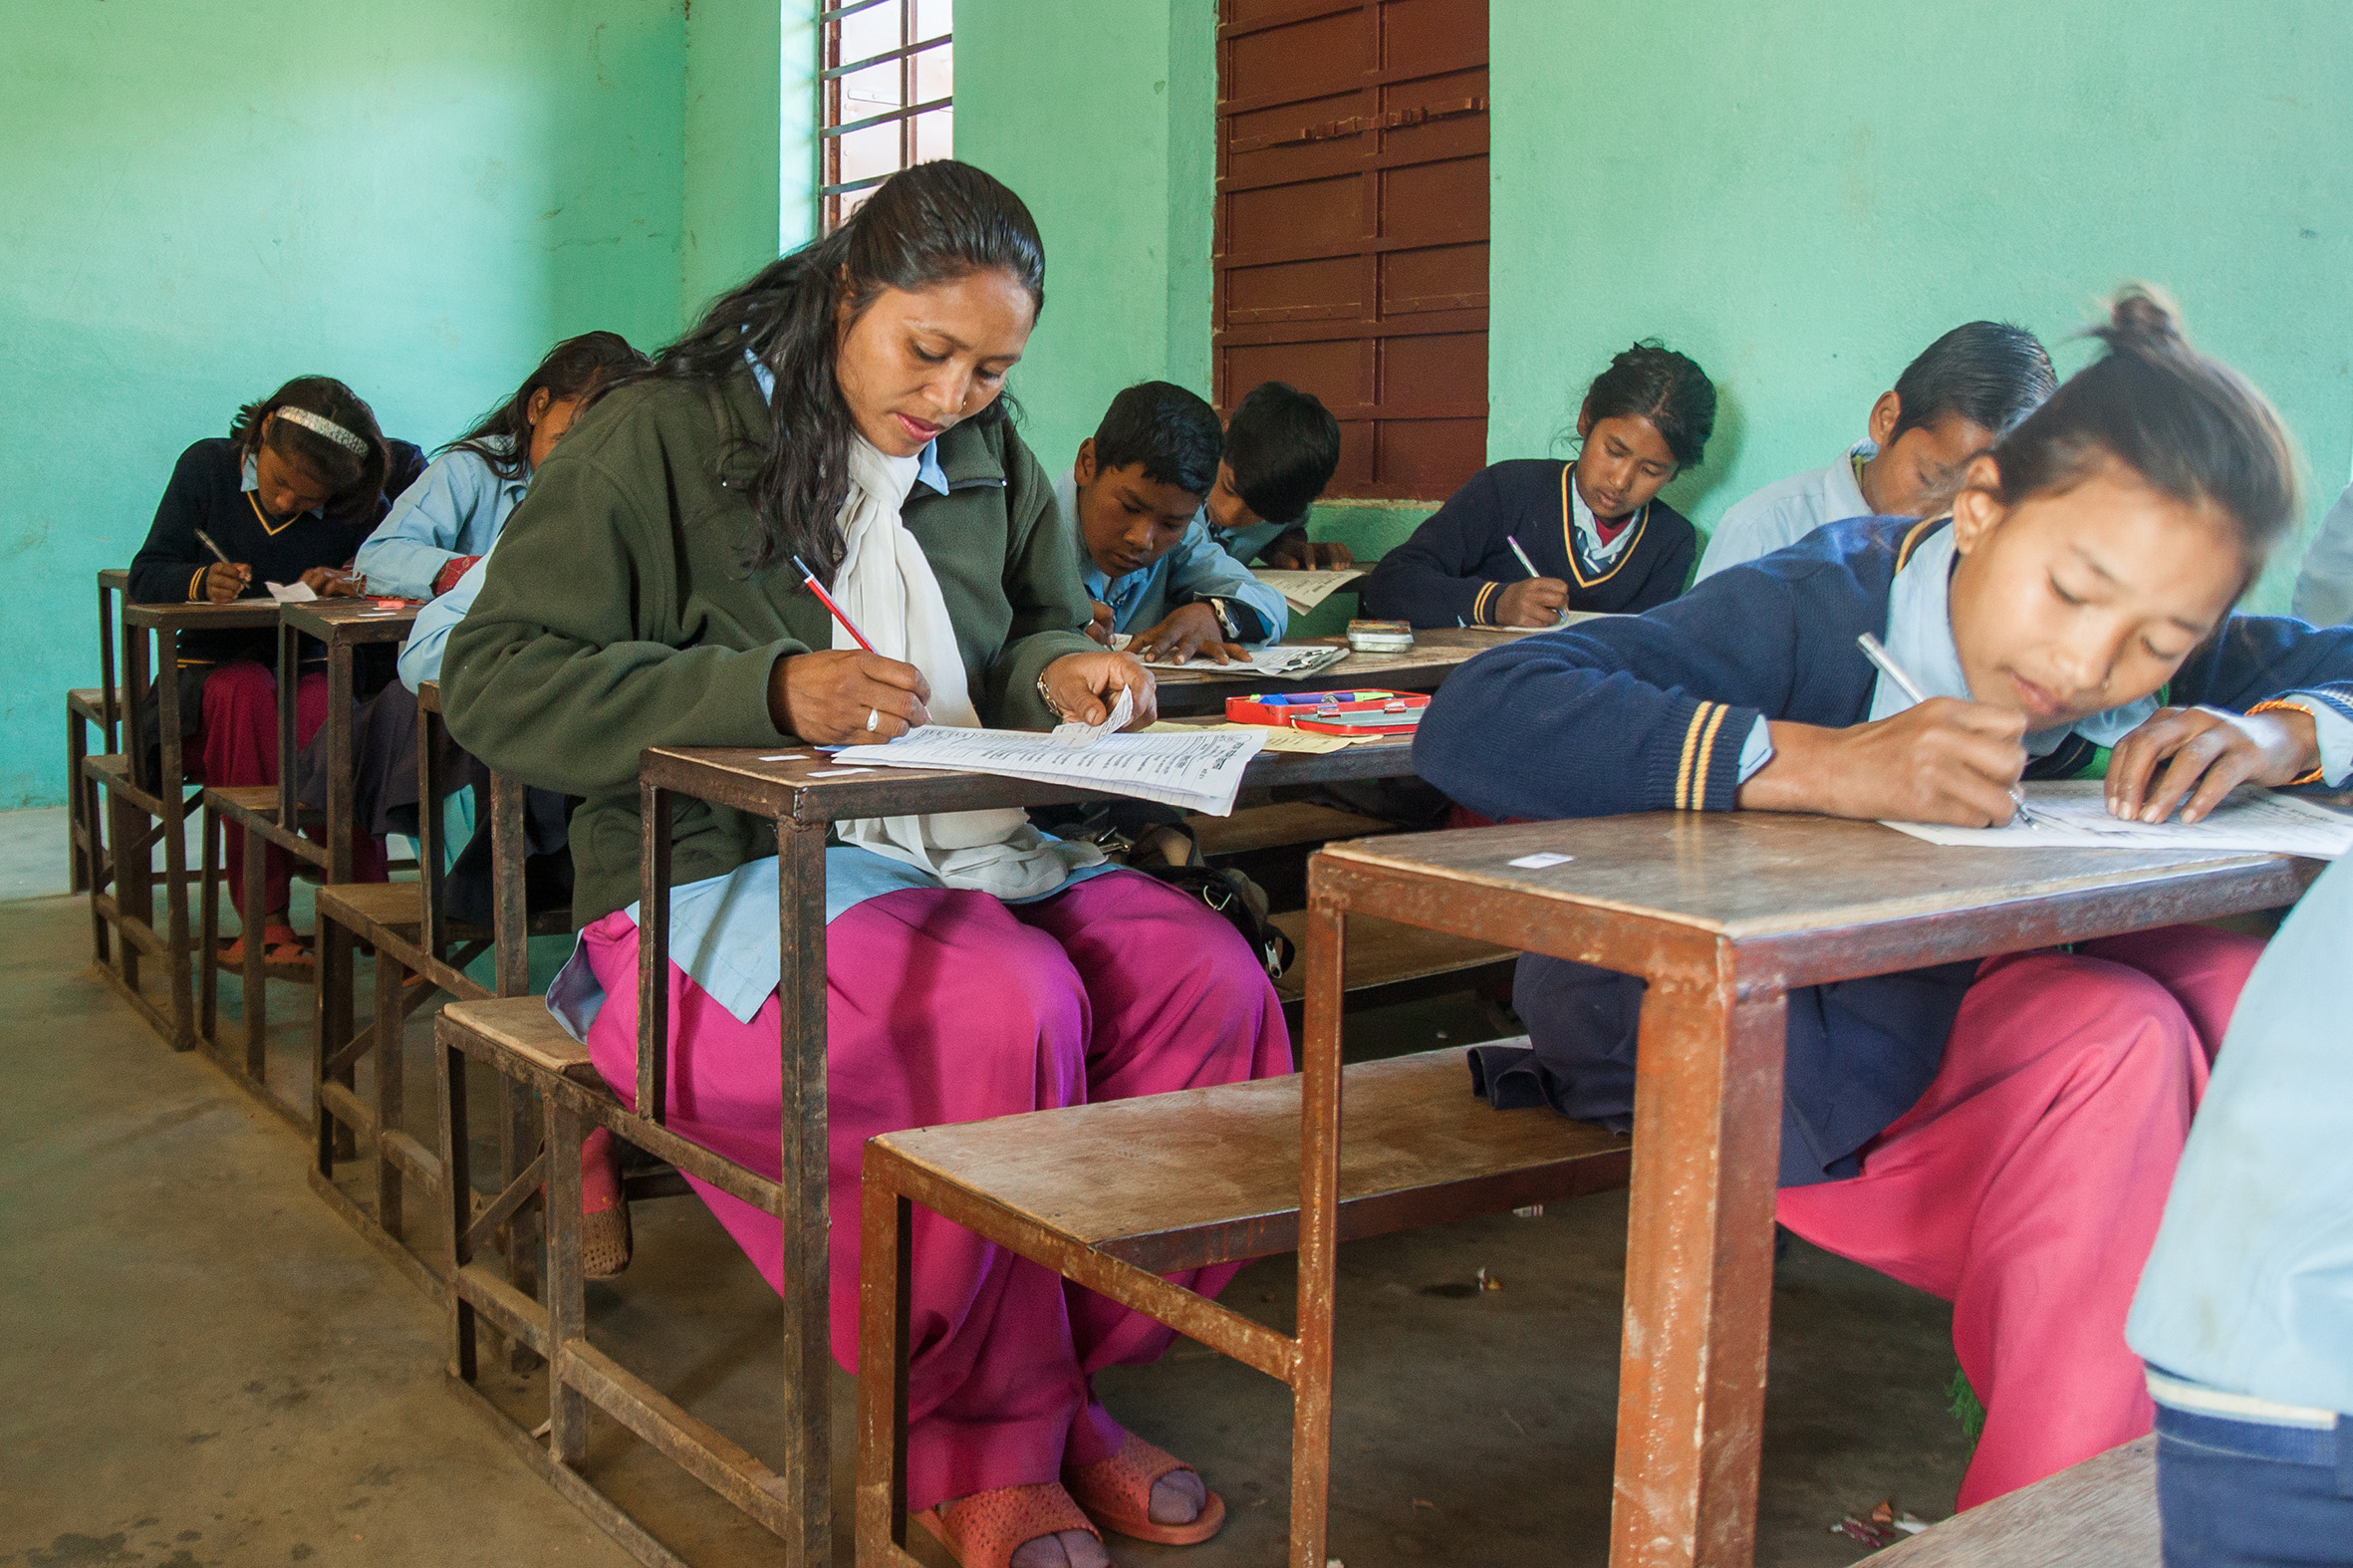 One of the women who met the President is woman leader Saraswati Deula, from Makwanpur, who went back to school to complete her studies - Credit: Amuse Communication/Oxfam